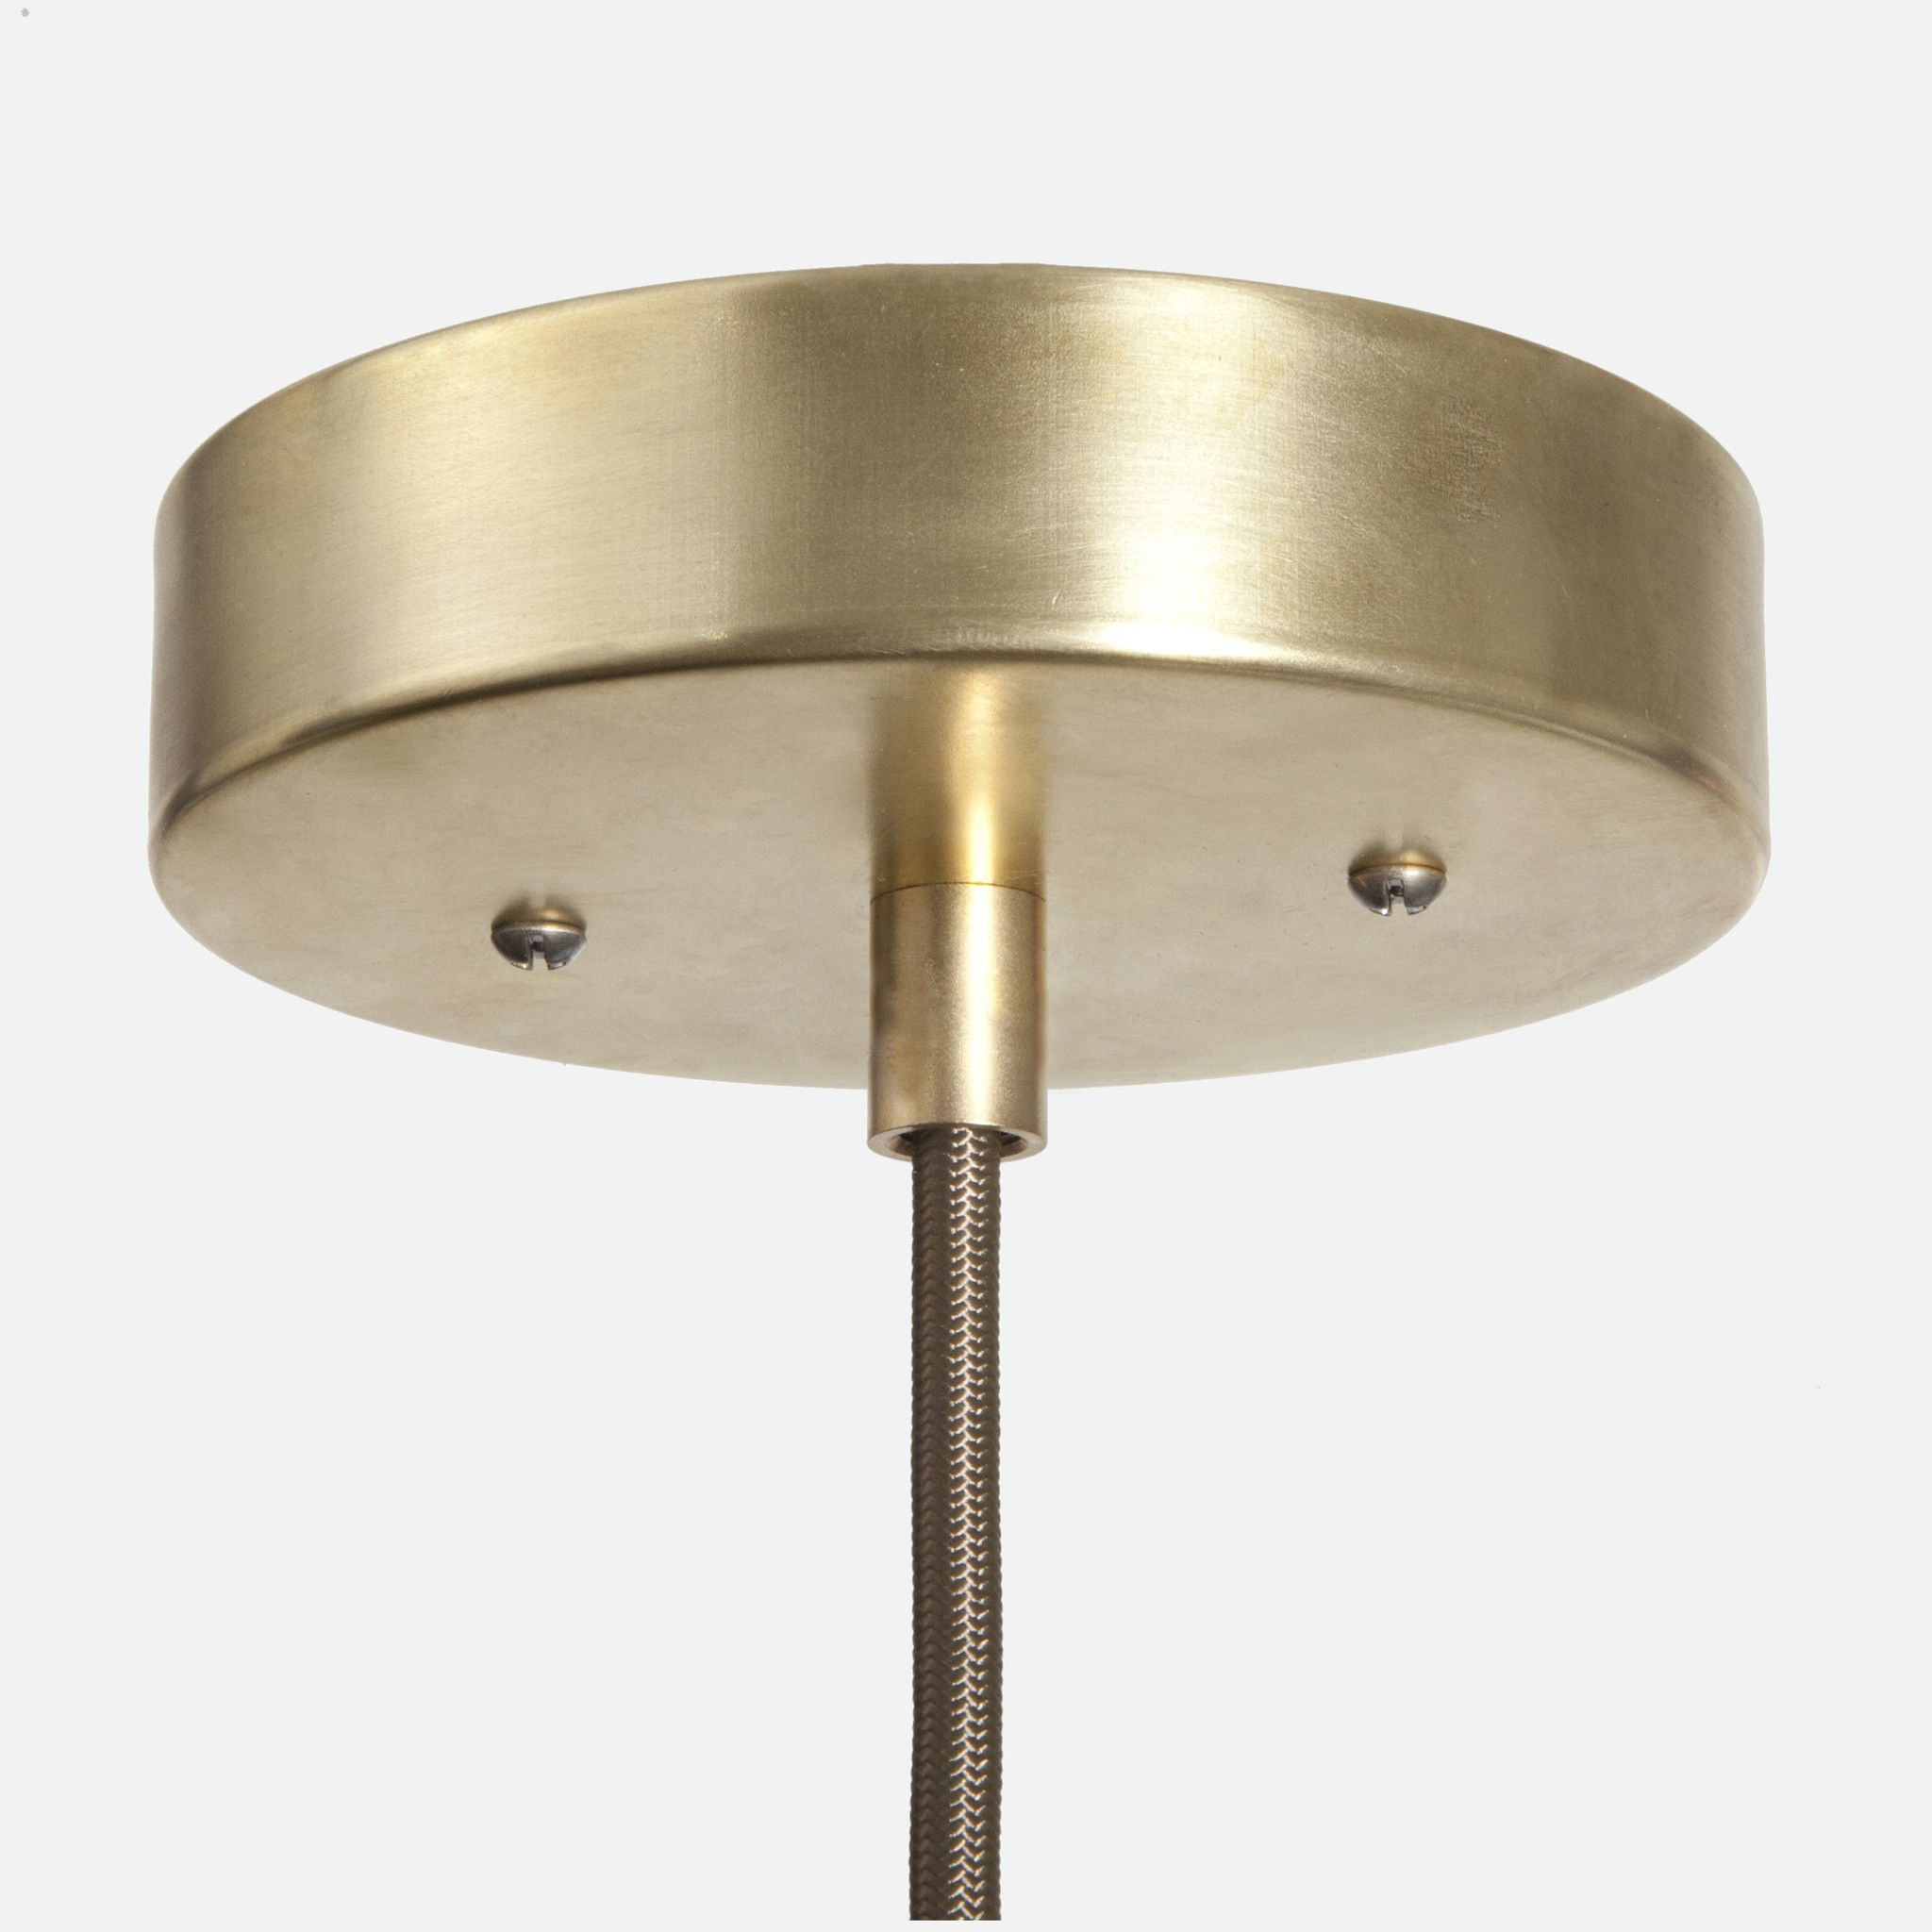 Ceiling Canopy Kit Raw Brass Coupling Chandelier Pendant